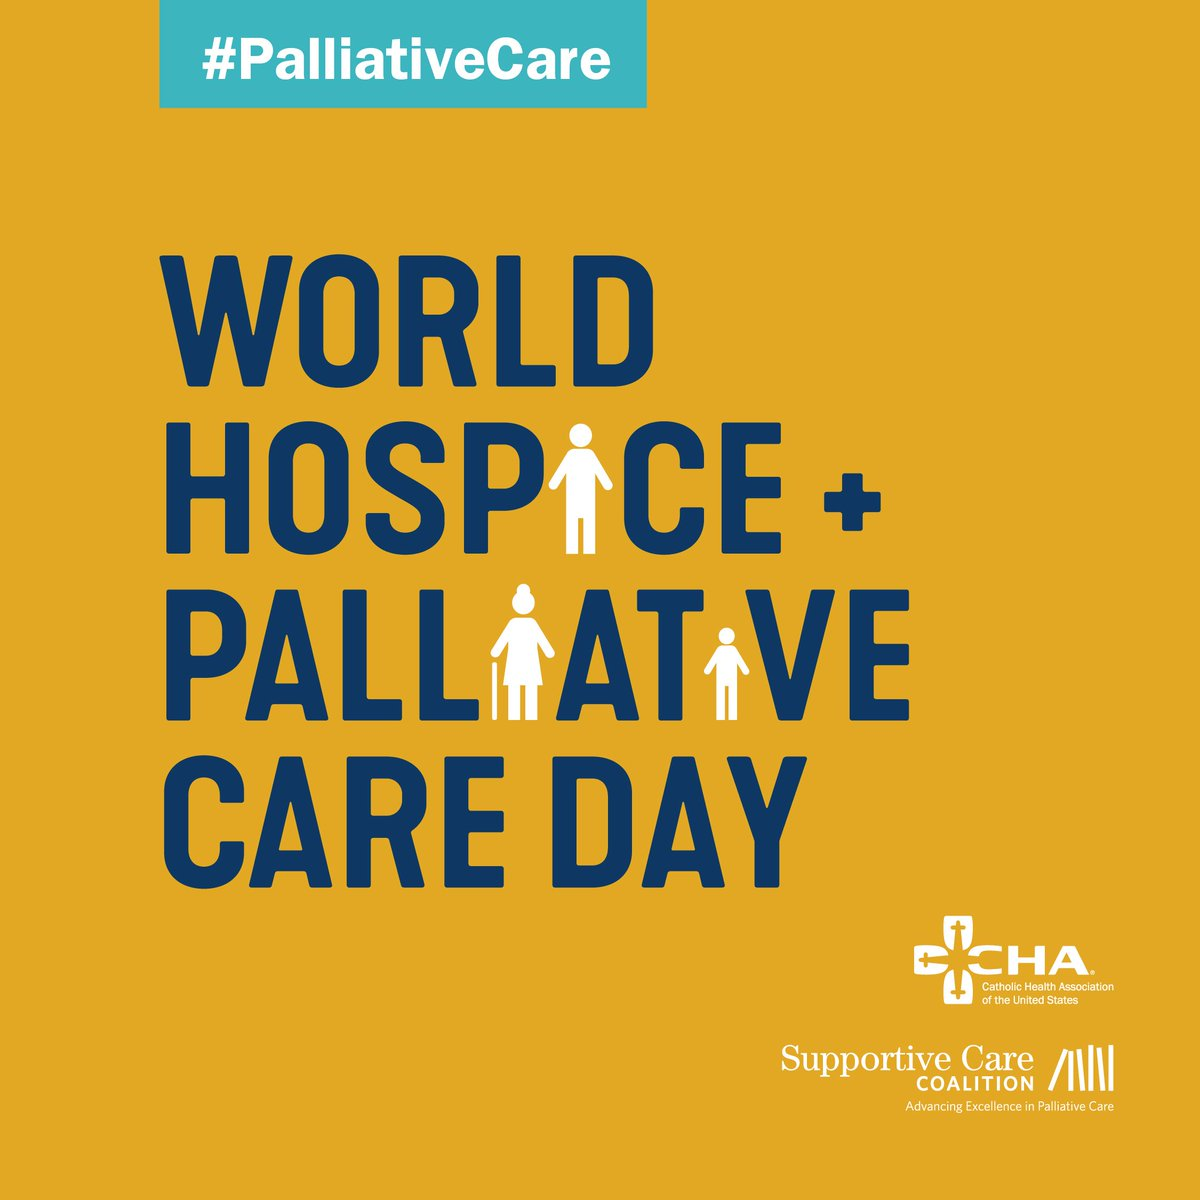 TODAY (Oct. 12) is World Hospice and Palliative Care Day. In addition, November is National Hospice & Palliative Care Month. CHA and @SCCpallcare have partnered to produce informational & inspirational resources http://ow.ly/VqoH30m8Wse #PalliativeCare #WHPCDay19